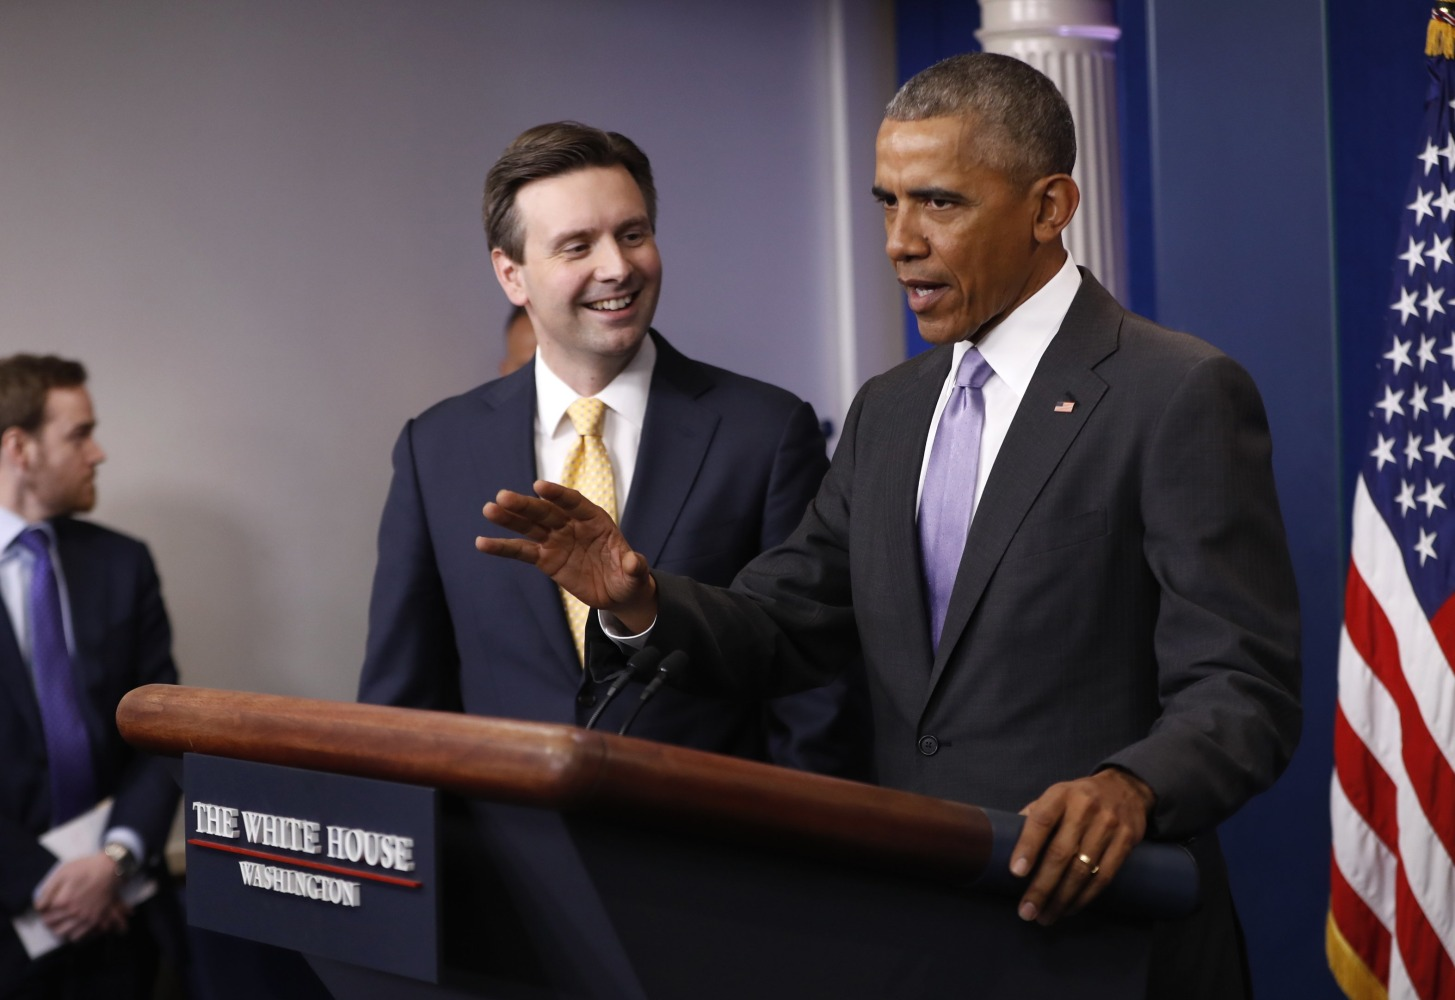 Obama Lavishes Praise on Josh Earnest During Last White House Press Briefing